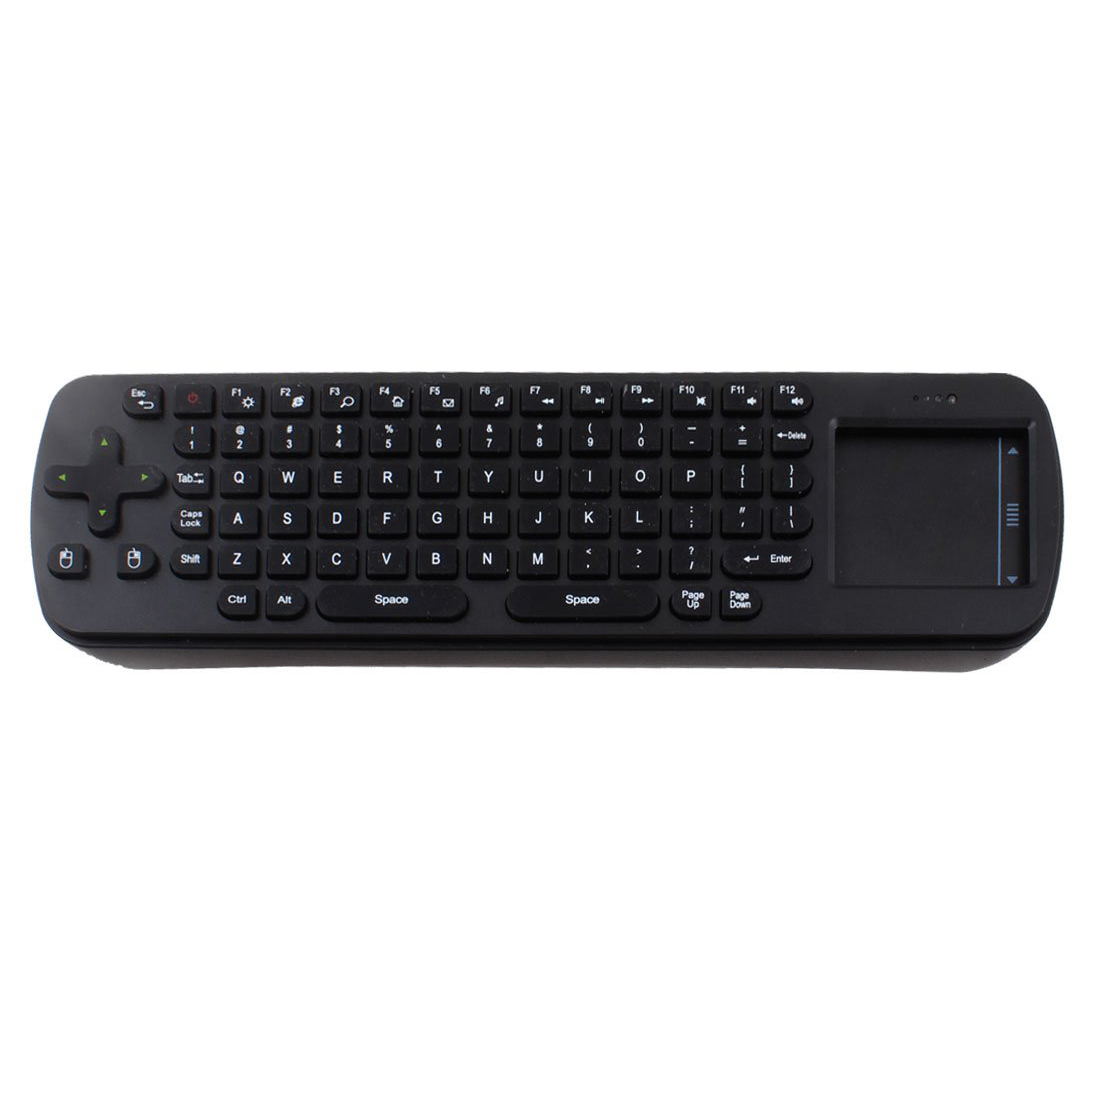 CAA-Hot Sale Air Mouse USB Wireless Keyboard Remote Android TV PC Media Player(China (Mainland))